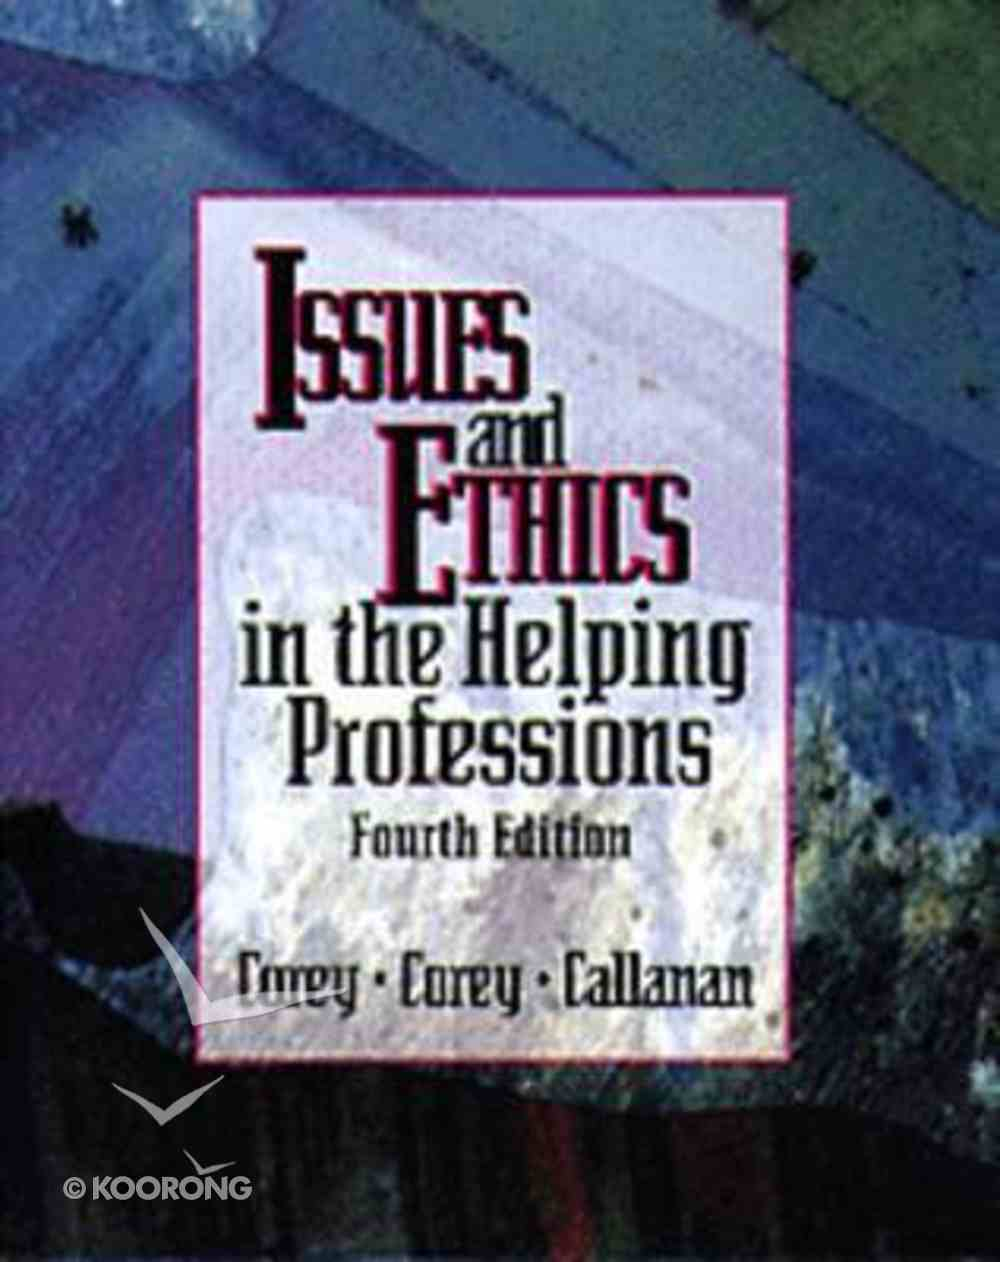 Issues and Ethics in the Helping Professions (4th Edition) Paperback